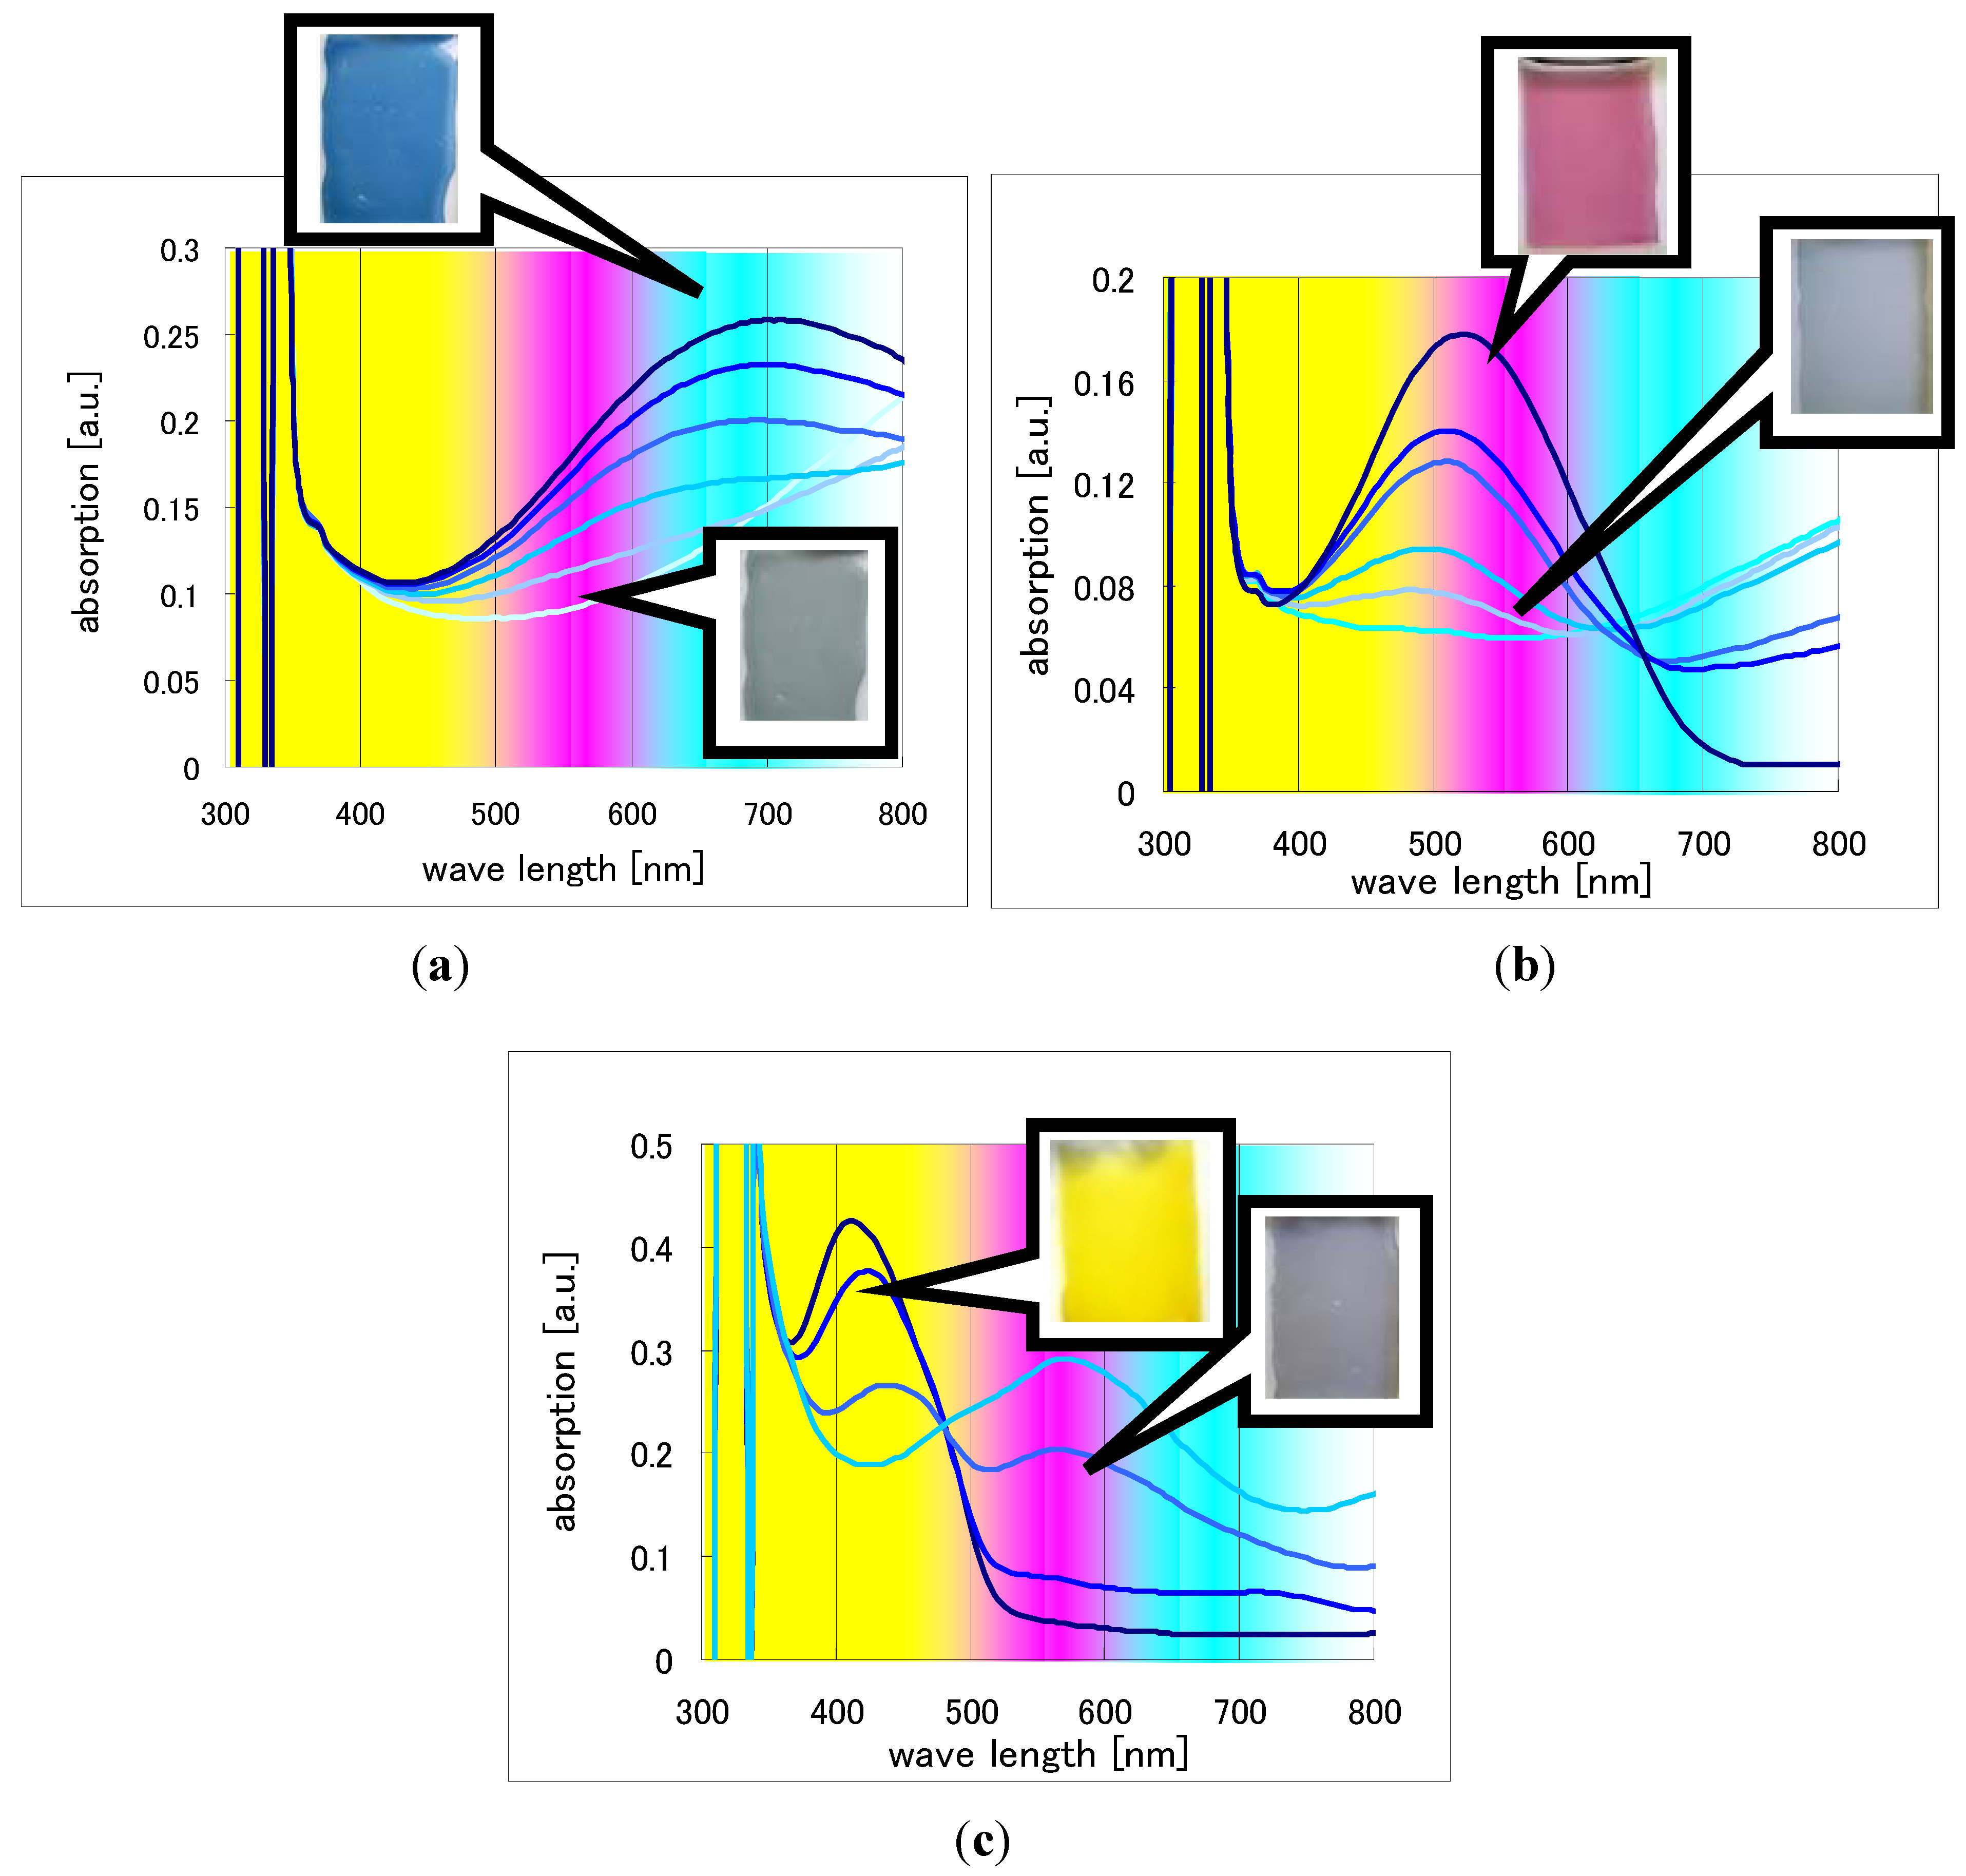 uv vis works essay Critical reviews in analytical chemistry volume 46, 2016 - issue 3 submit an  using uv-vis spectrophotometry  the main difference among these works is the.